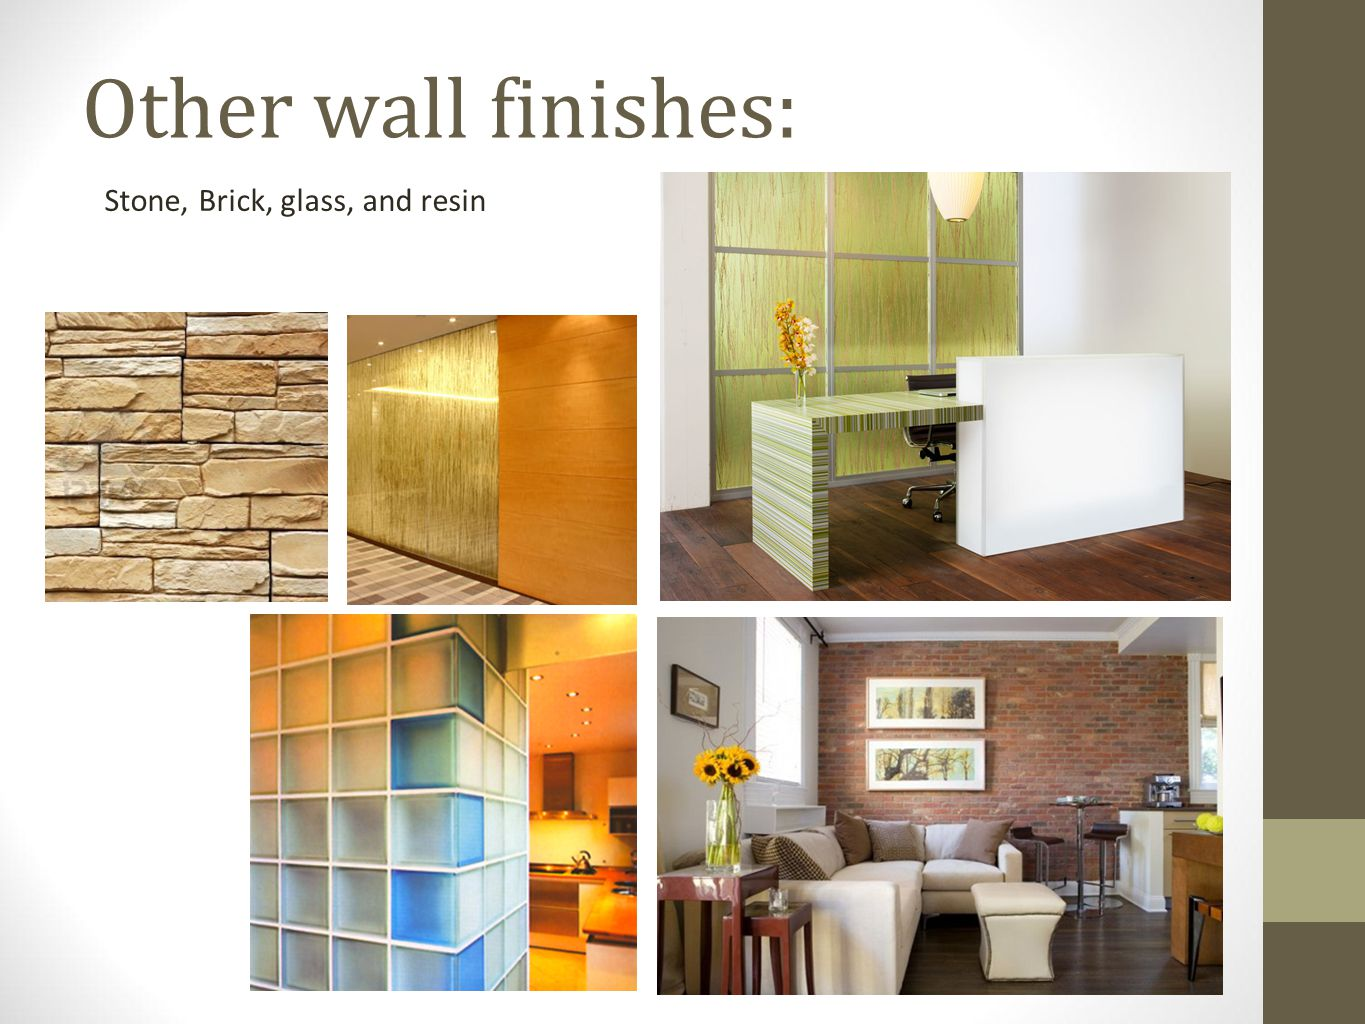 Other wall finishes: Stone, Brick, glass, and resin